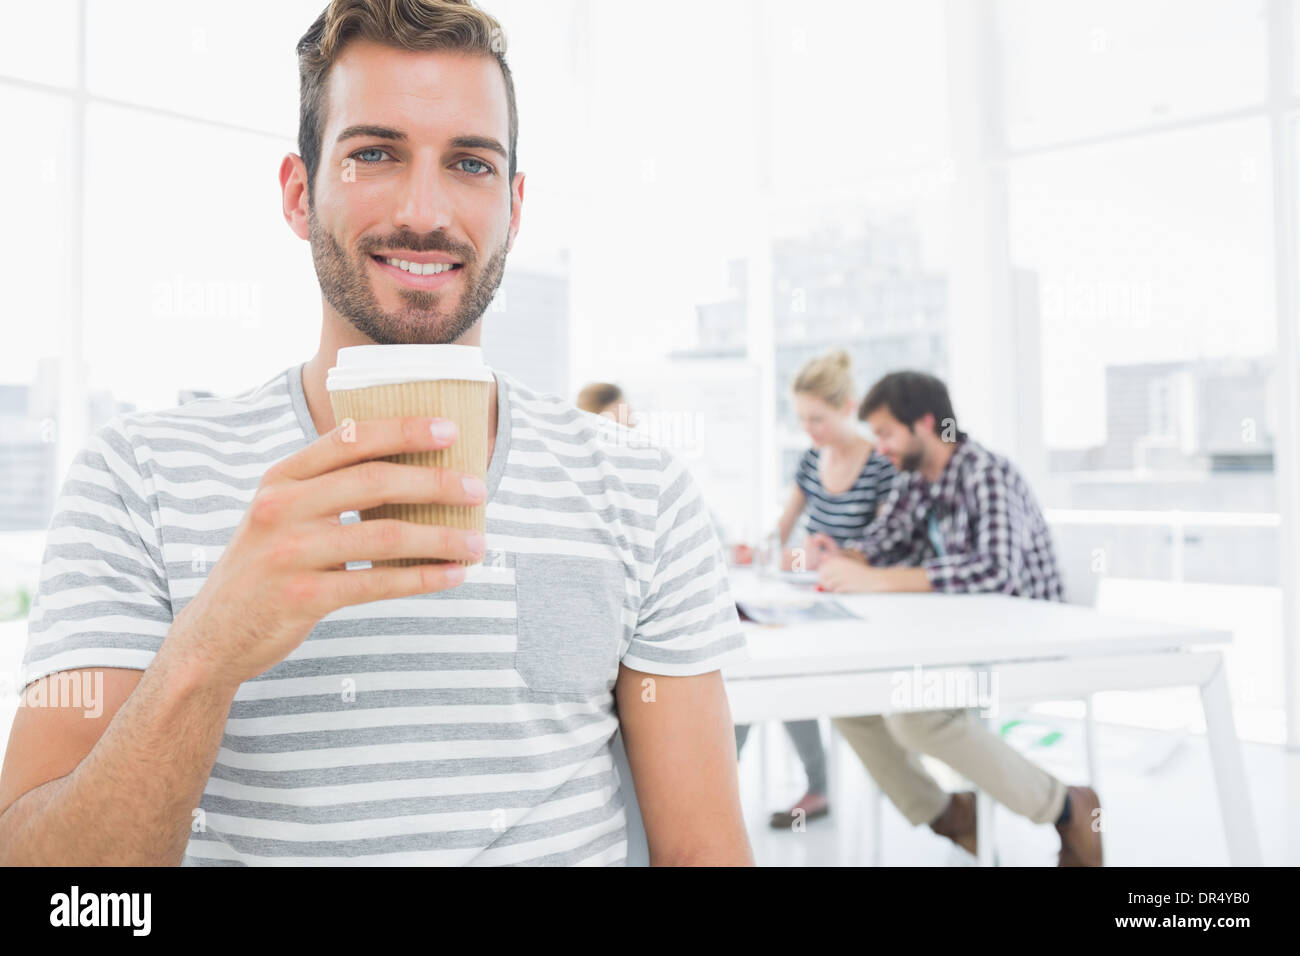 Man holding disposable coffee cup with colleagues in background - Stock Image